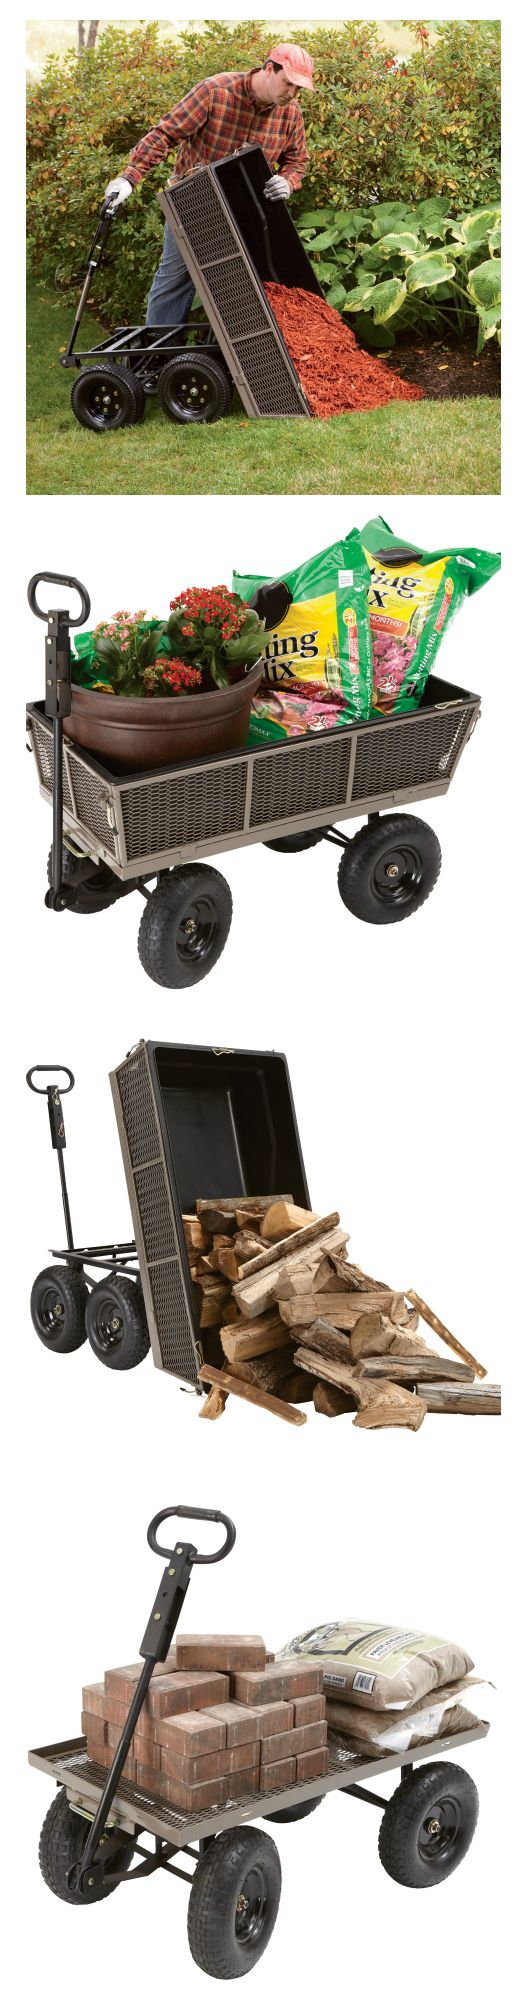 Gorilla Dump Cart - The side panels can be removed to turn the cart into a flatbed cart. Perfect for hauling oversized loads.